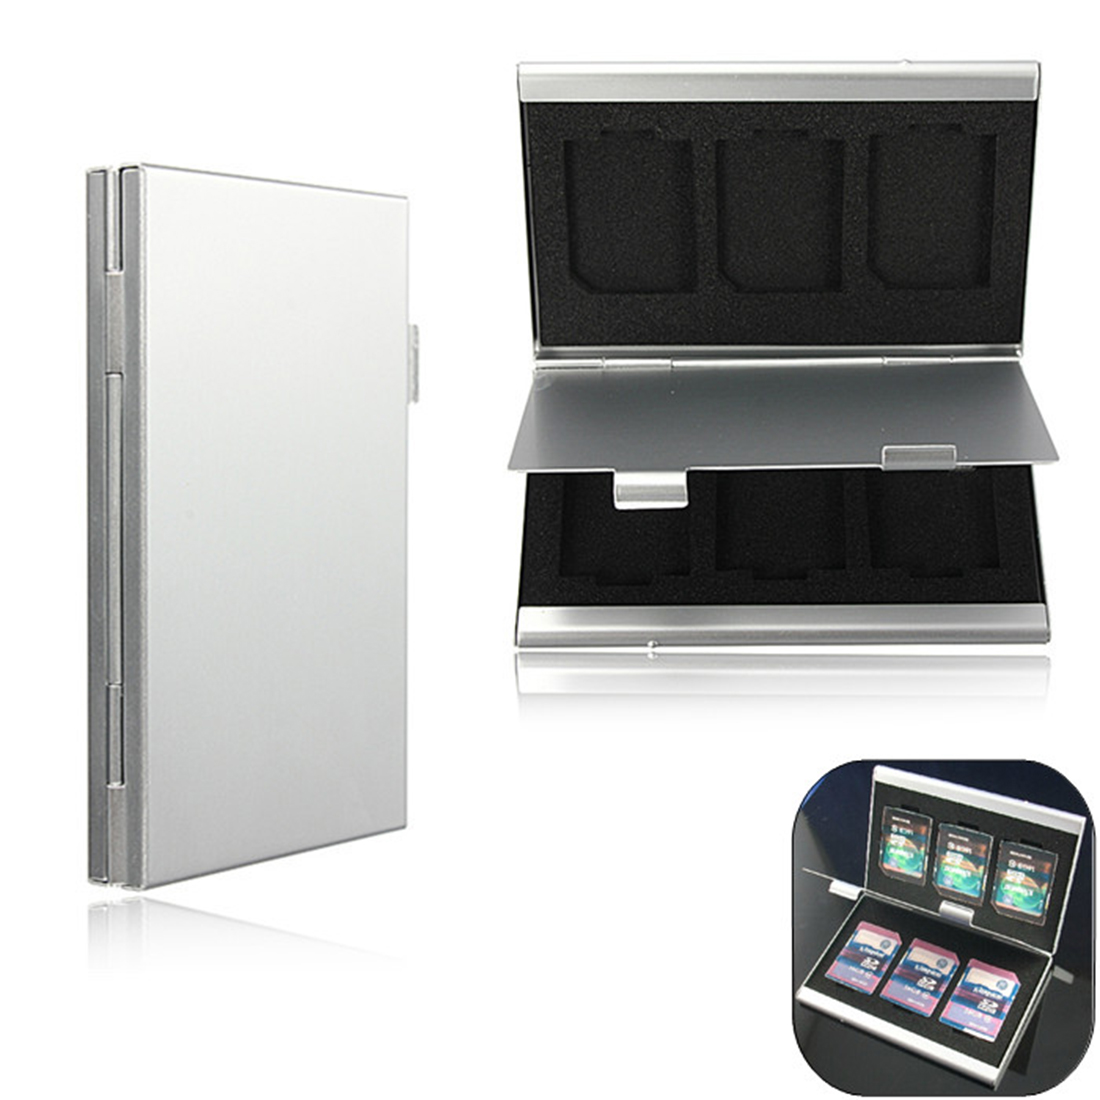 NOYOKERE Est 6 Slots Top Quality Dougle-desk Aluminum Storage Box For SD SDHC SDXC MMC Memory Card Case Holder Protector